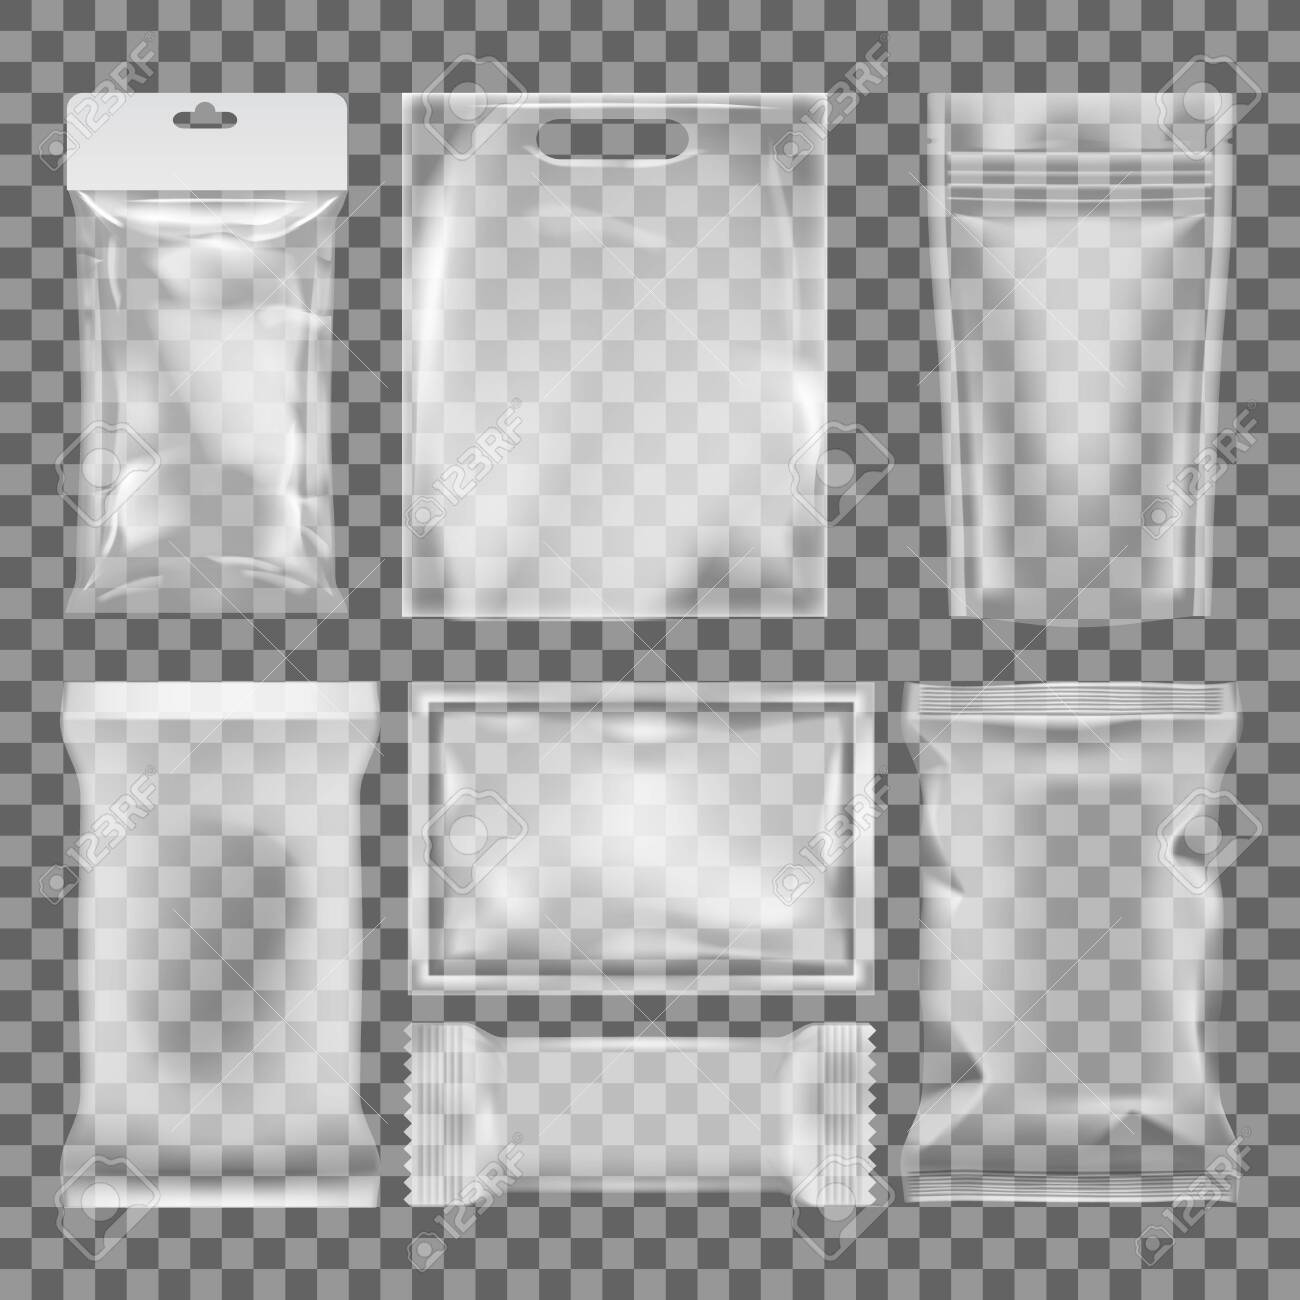 3D Transparent Empty Glossy Plastic Food Packaging - 141125590